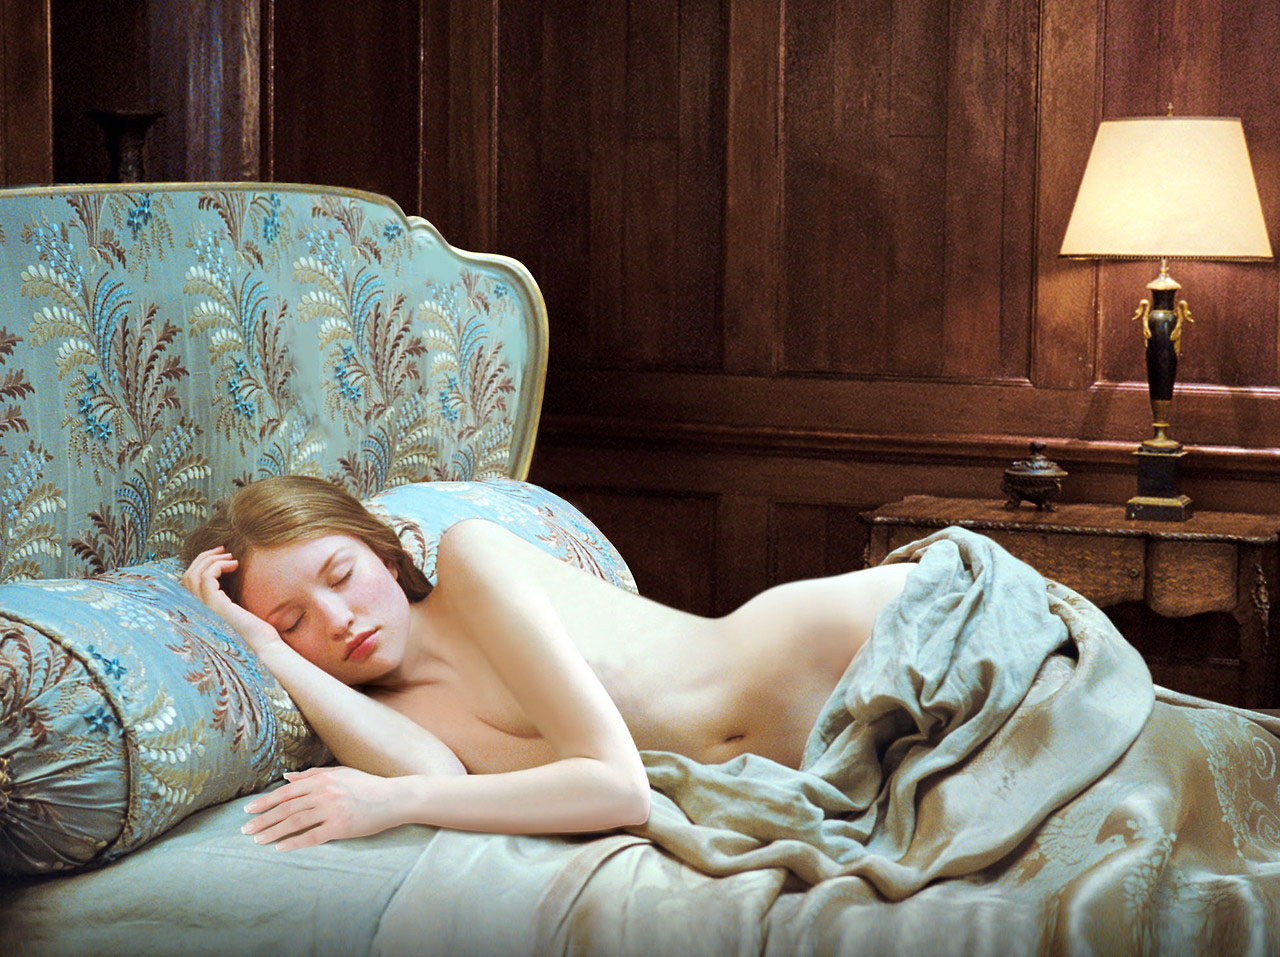 Julia Leigh, Sleeping Beauty (2011)